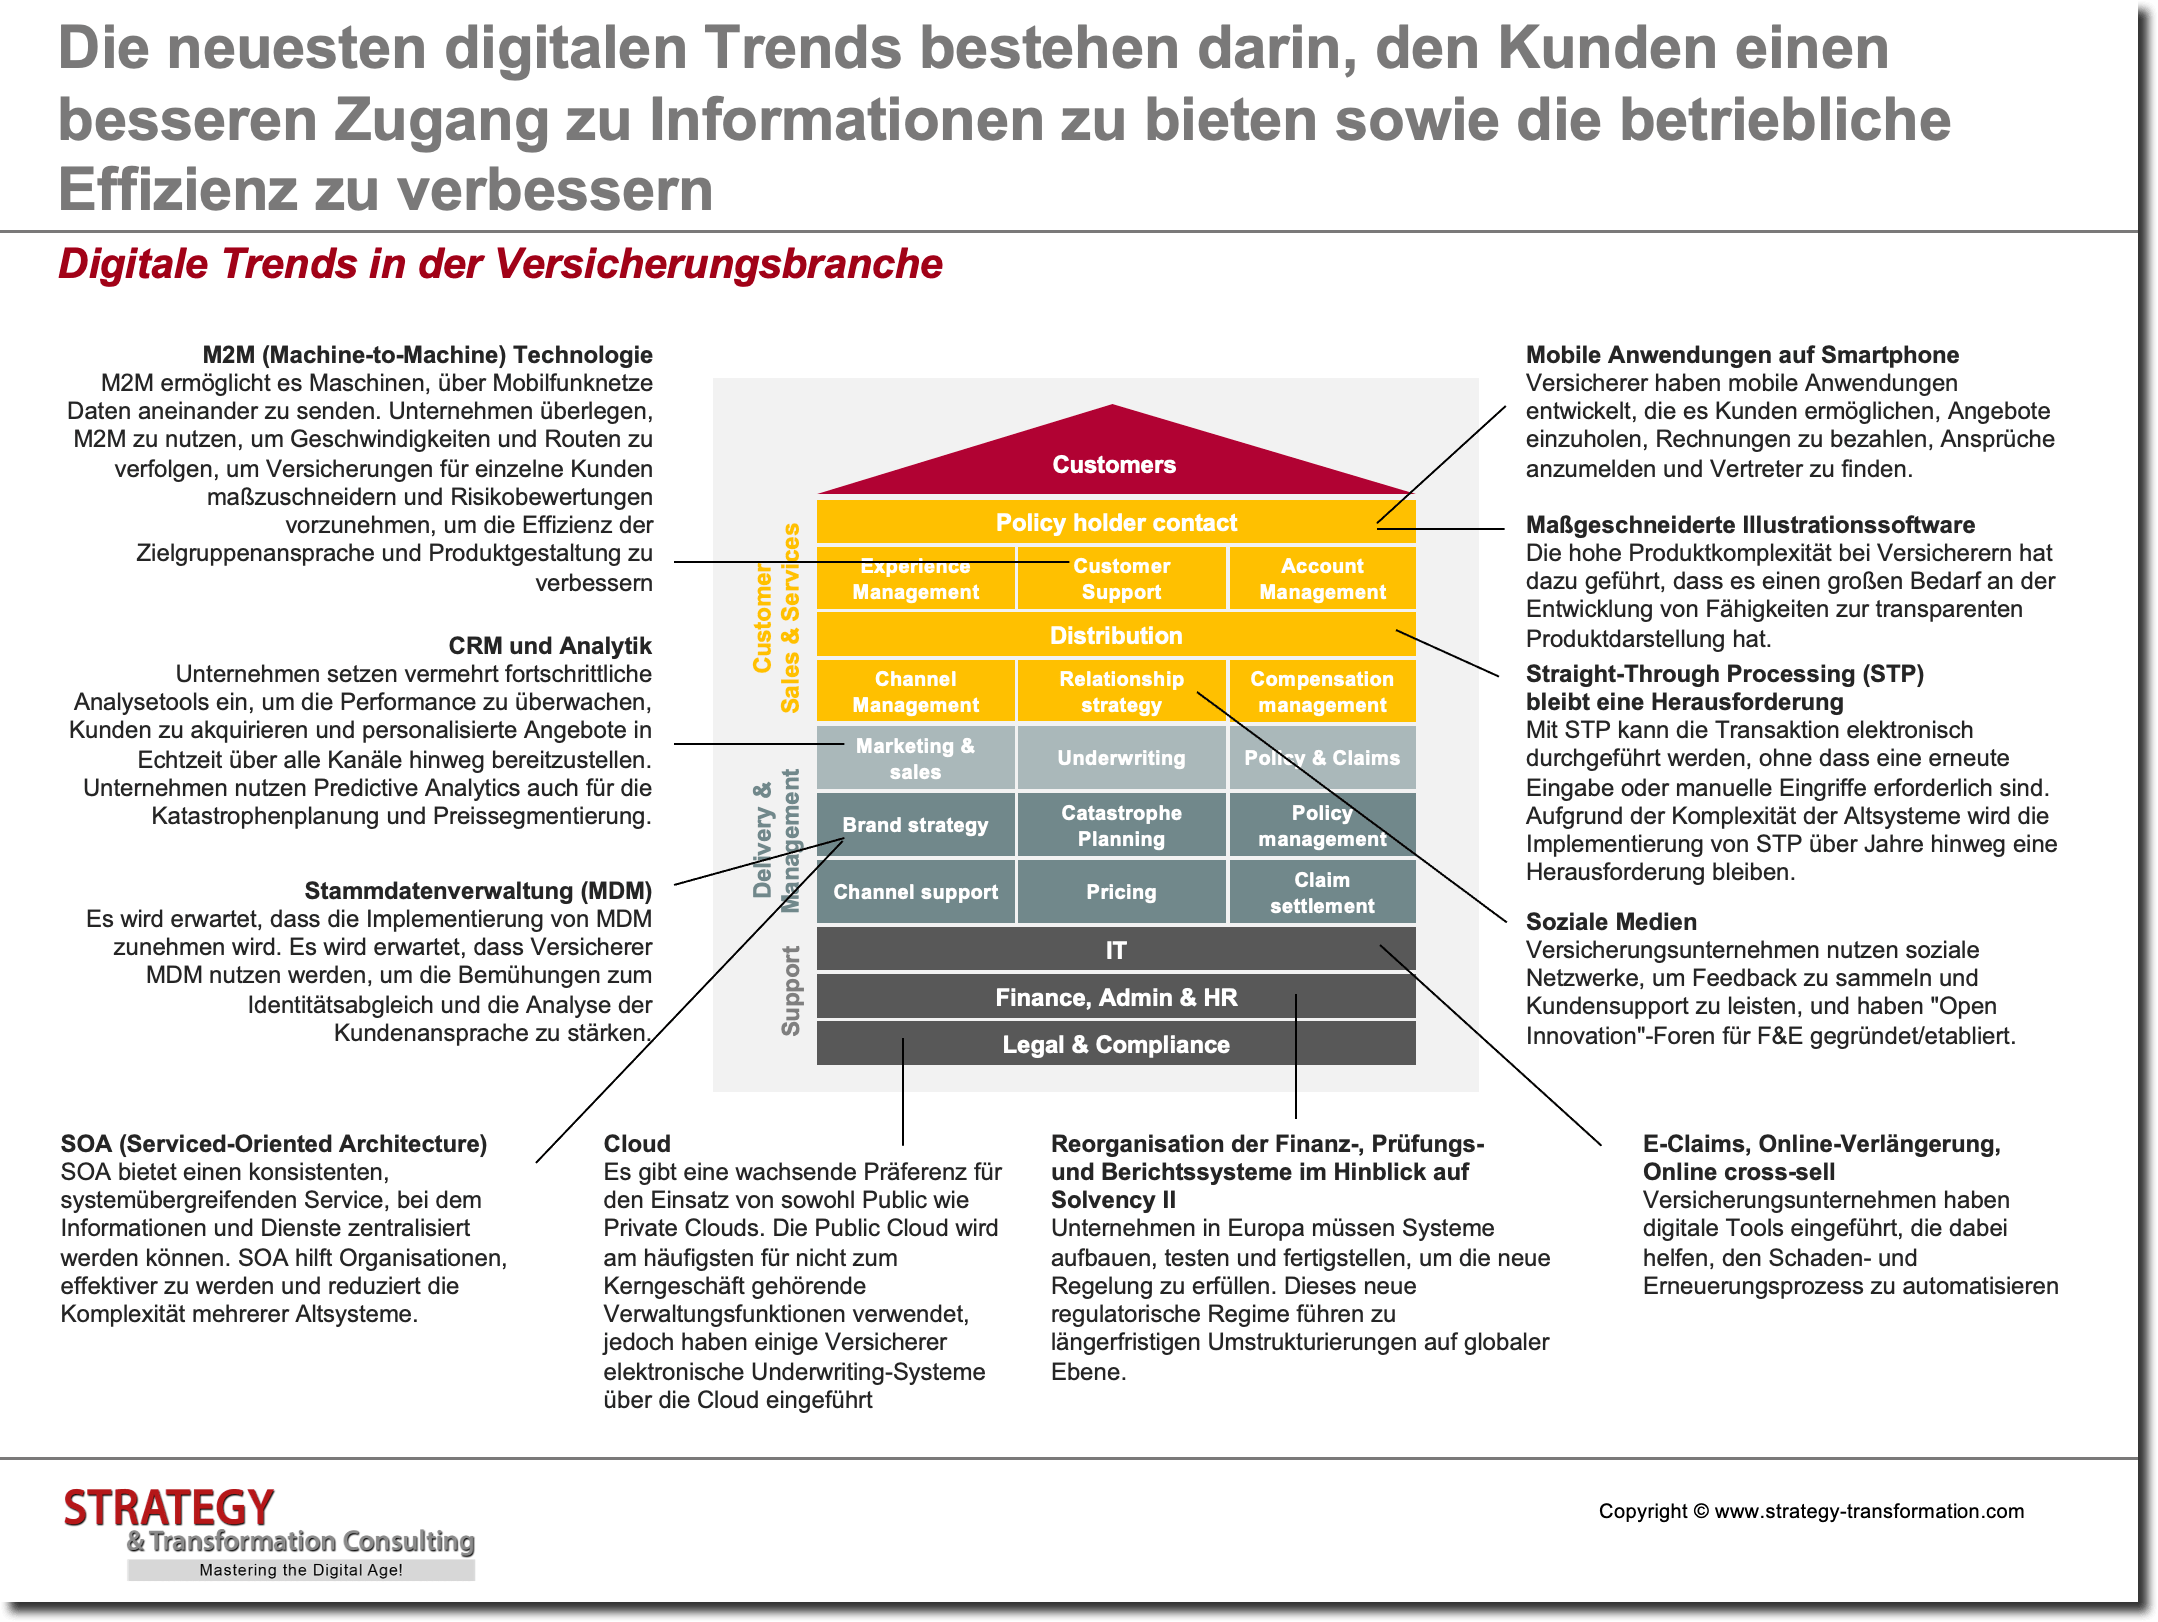 Digitale Trends in der Versicherungsbranche